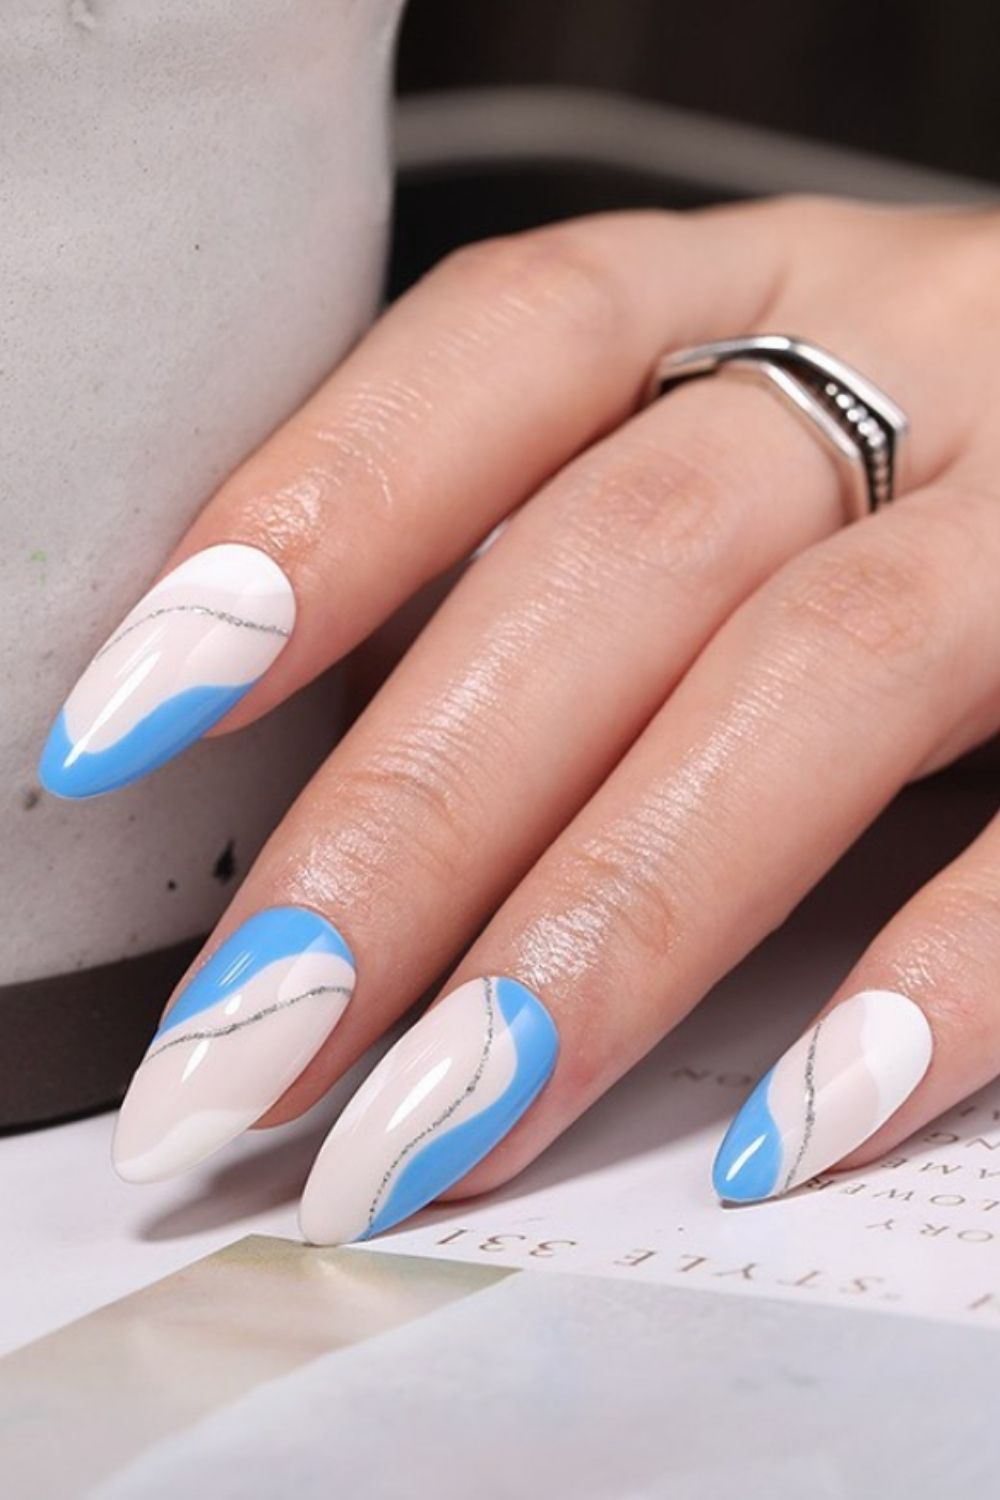 Light blue and silver striped almond acrylic nails